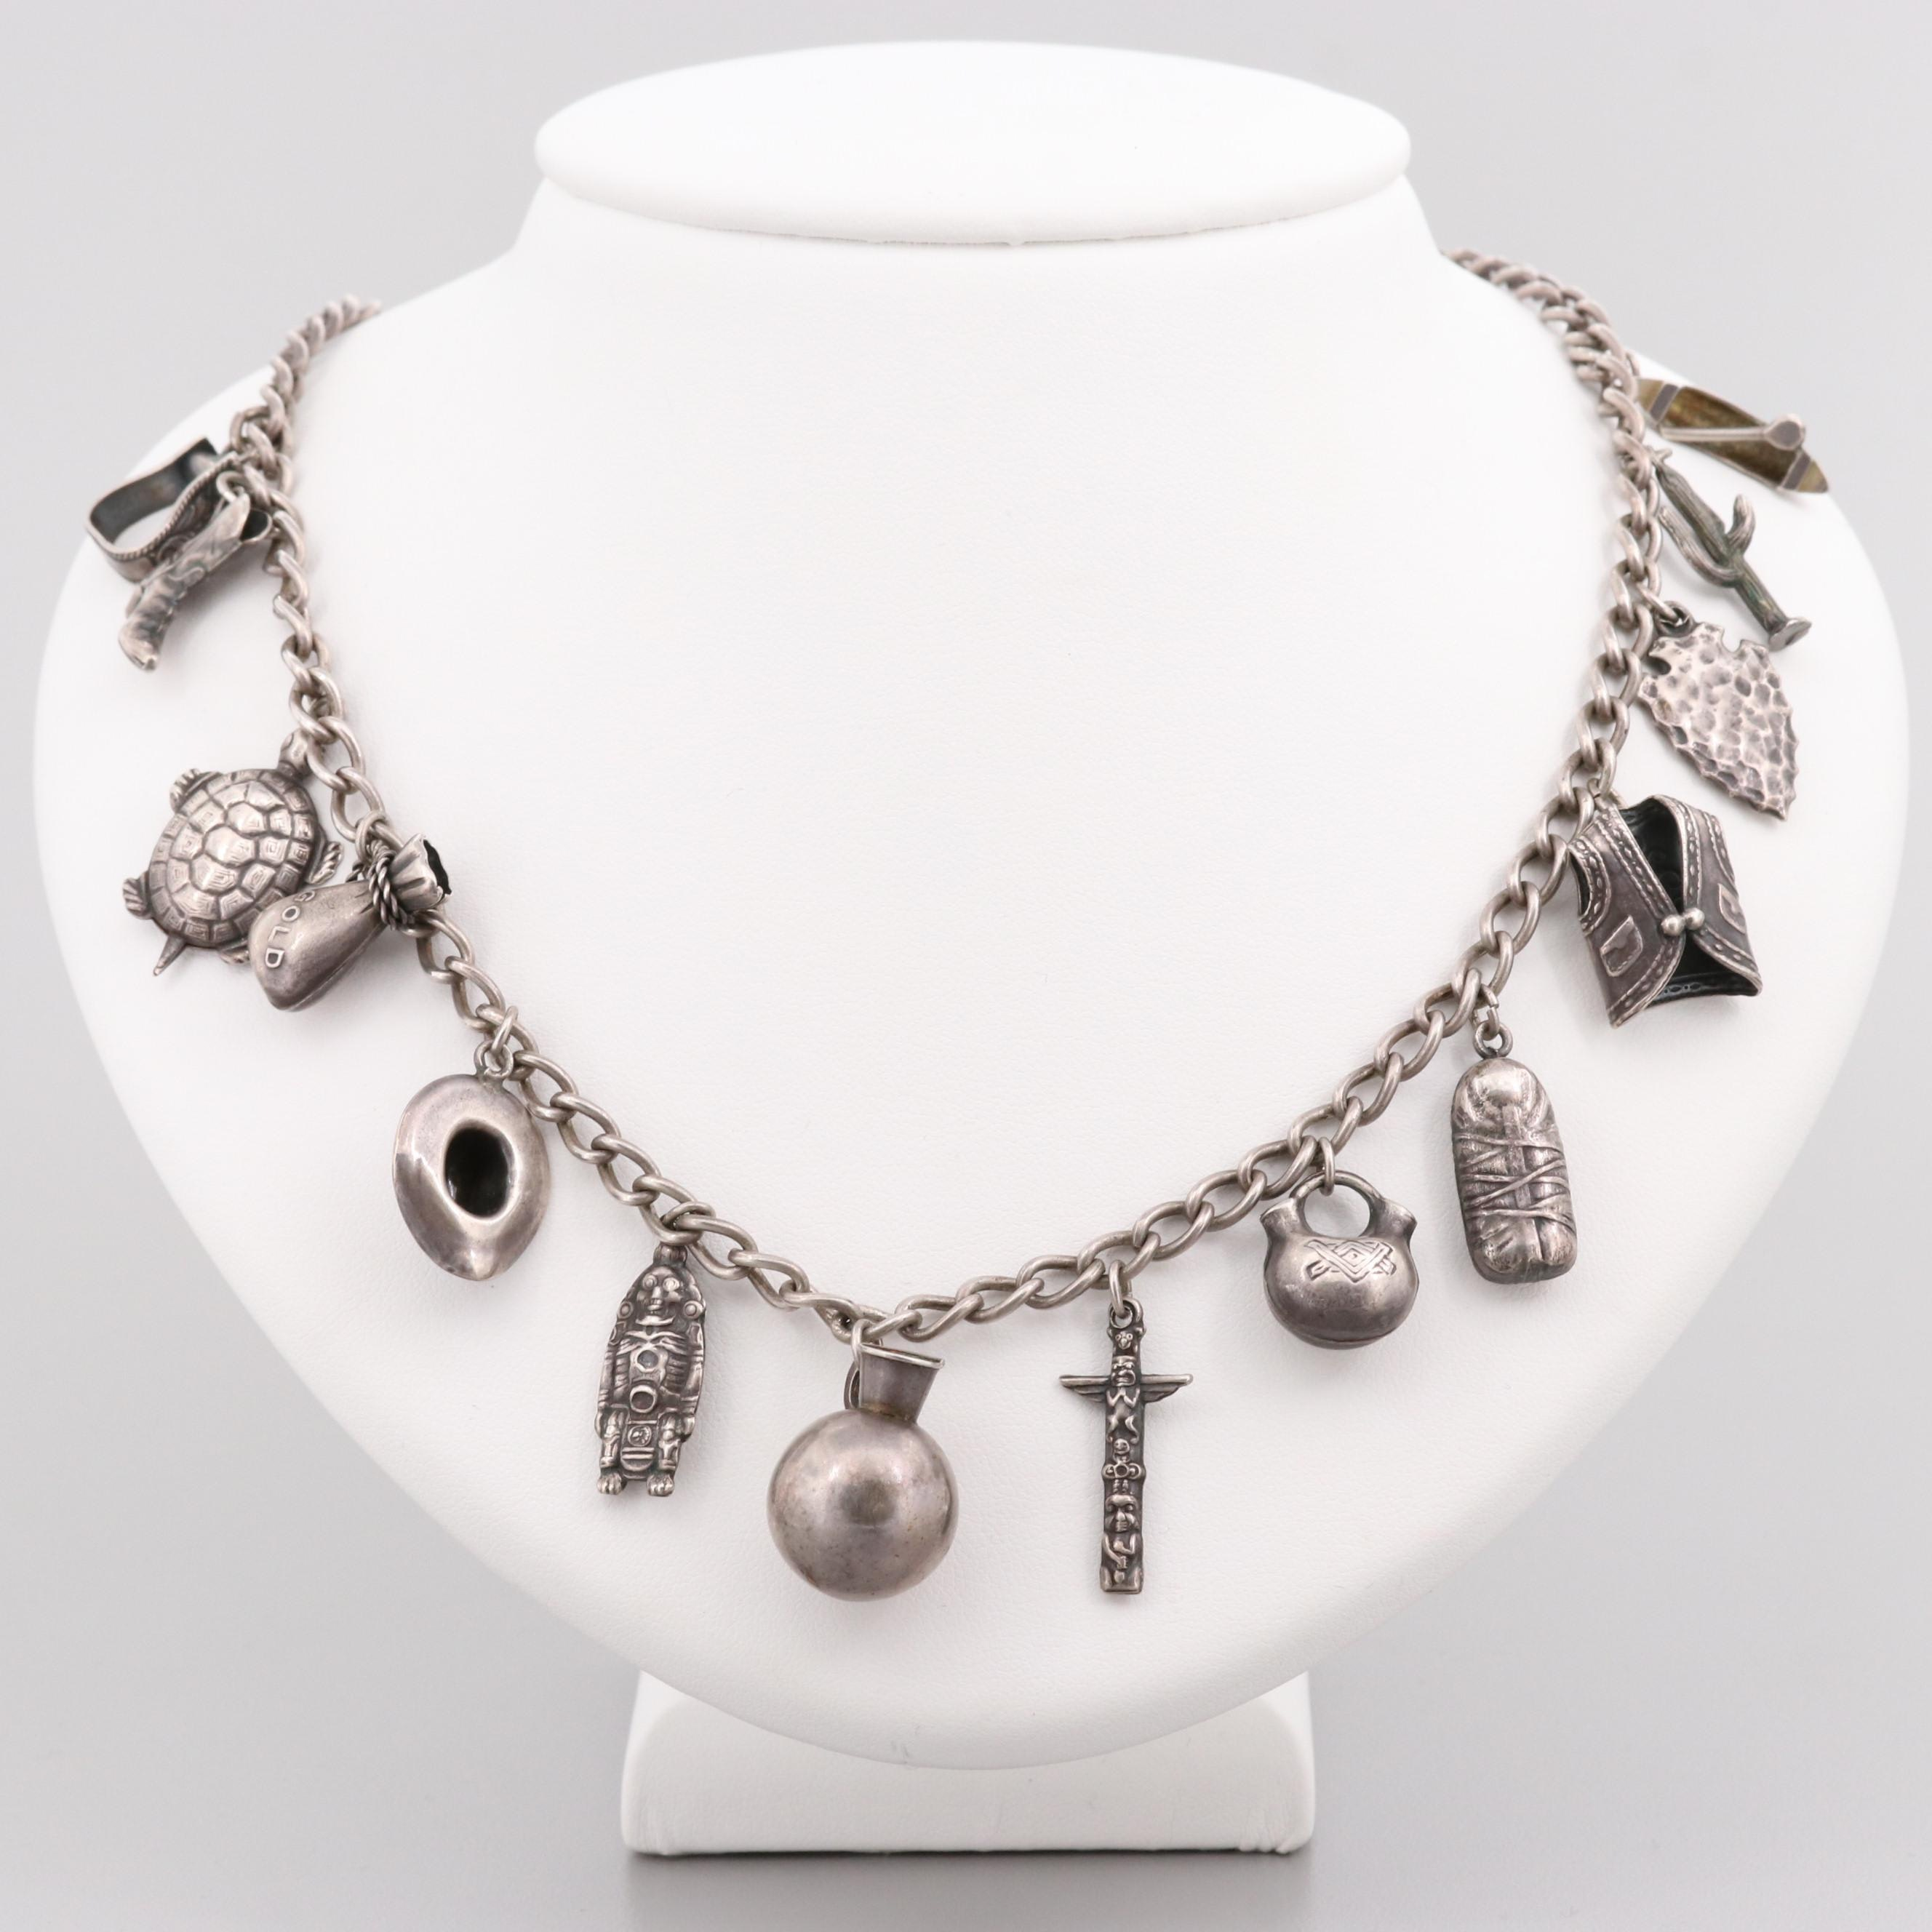 Southwestern Sterling Silver Necklace with Southwestern Charms